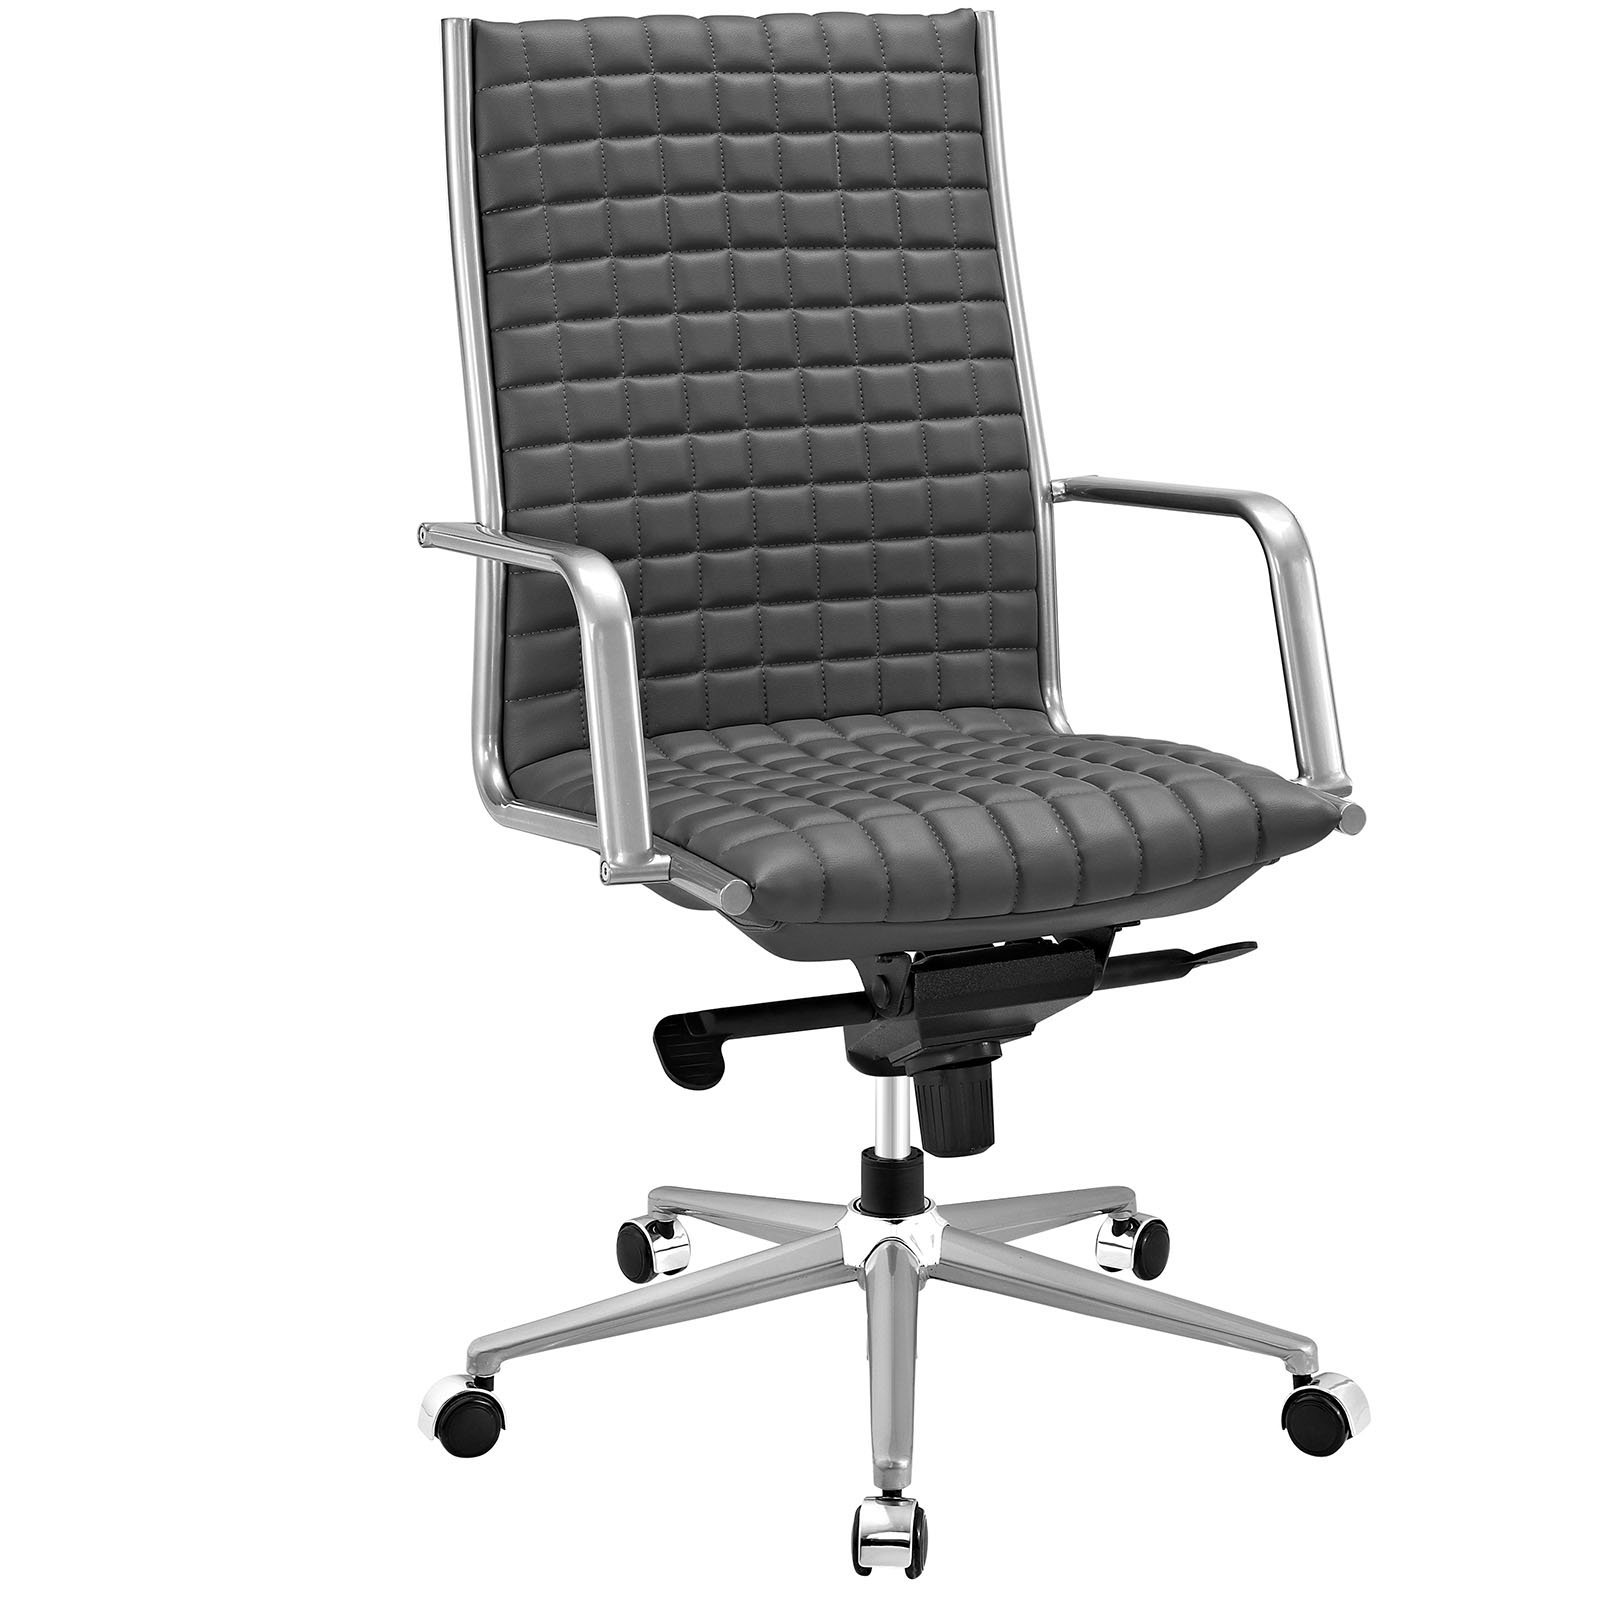 Modway Pattern Faux Leather Highback Managerial Office Chair in Gray